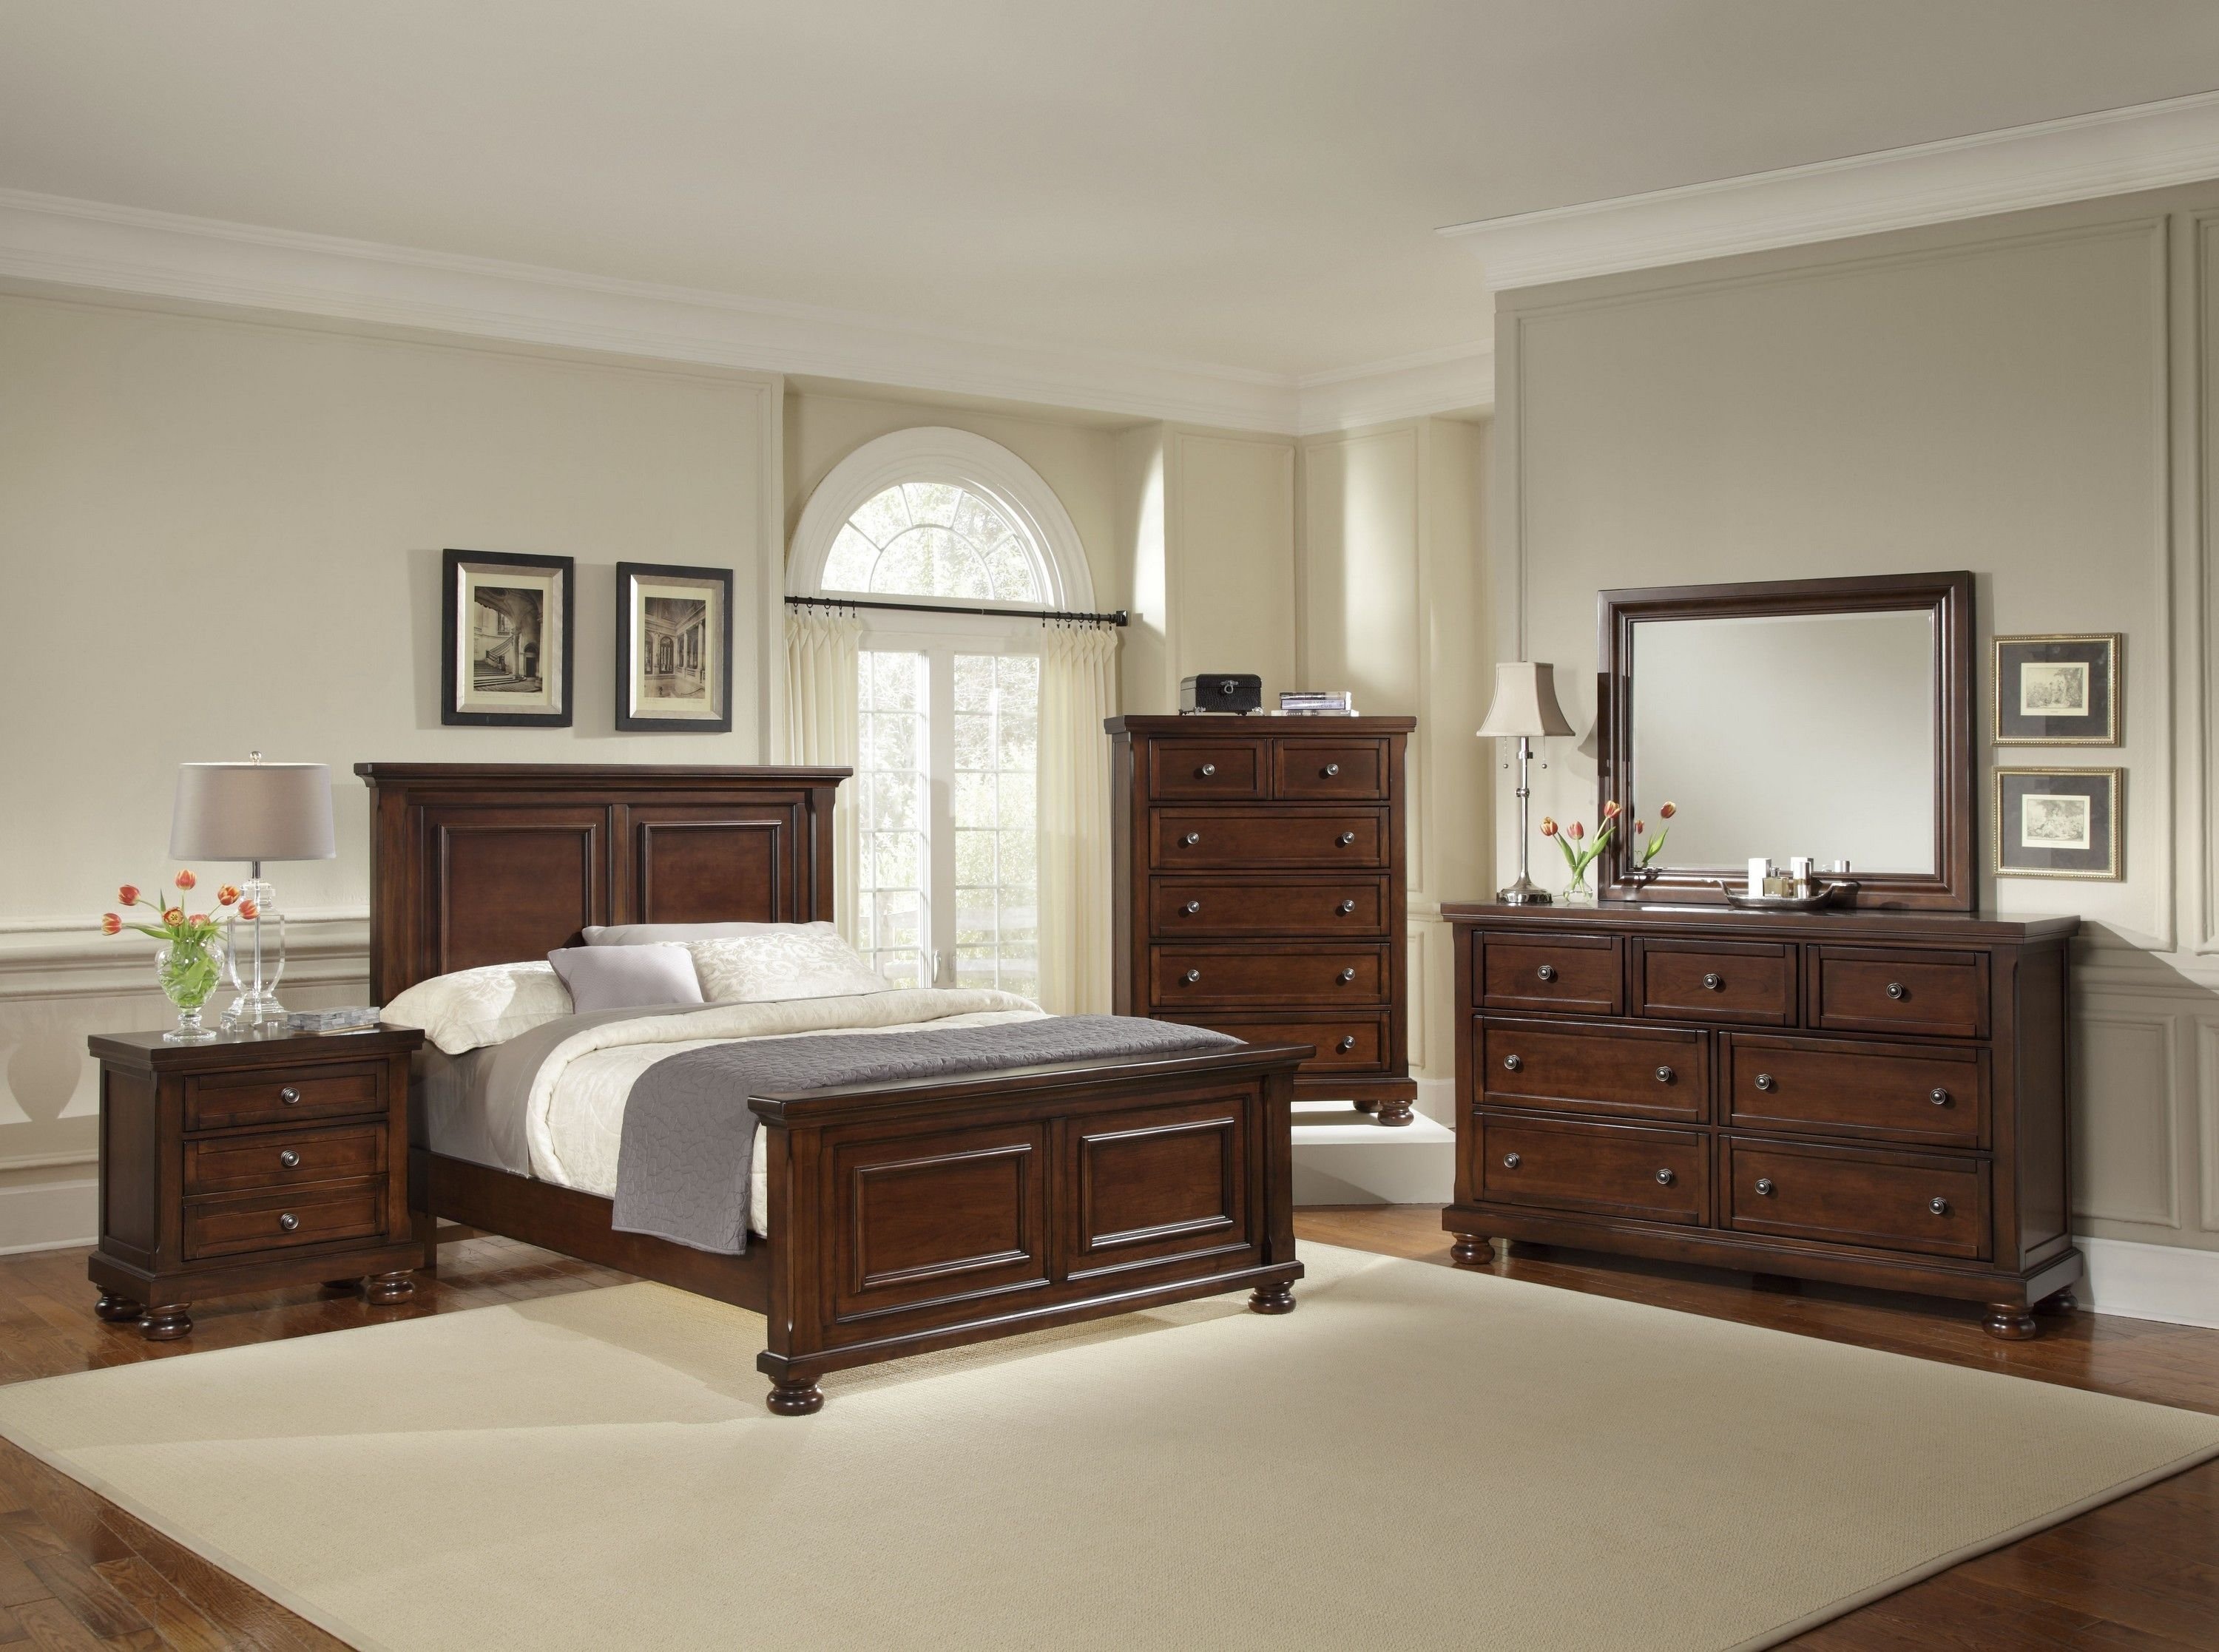 Best Vaughan Bassett Bedroom Night Stand 530 226 B F Myers Furniture Goodlettsville Tennessee With Pictures